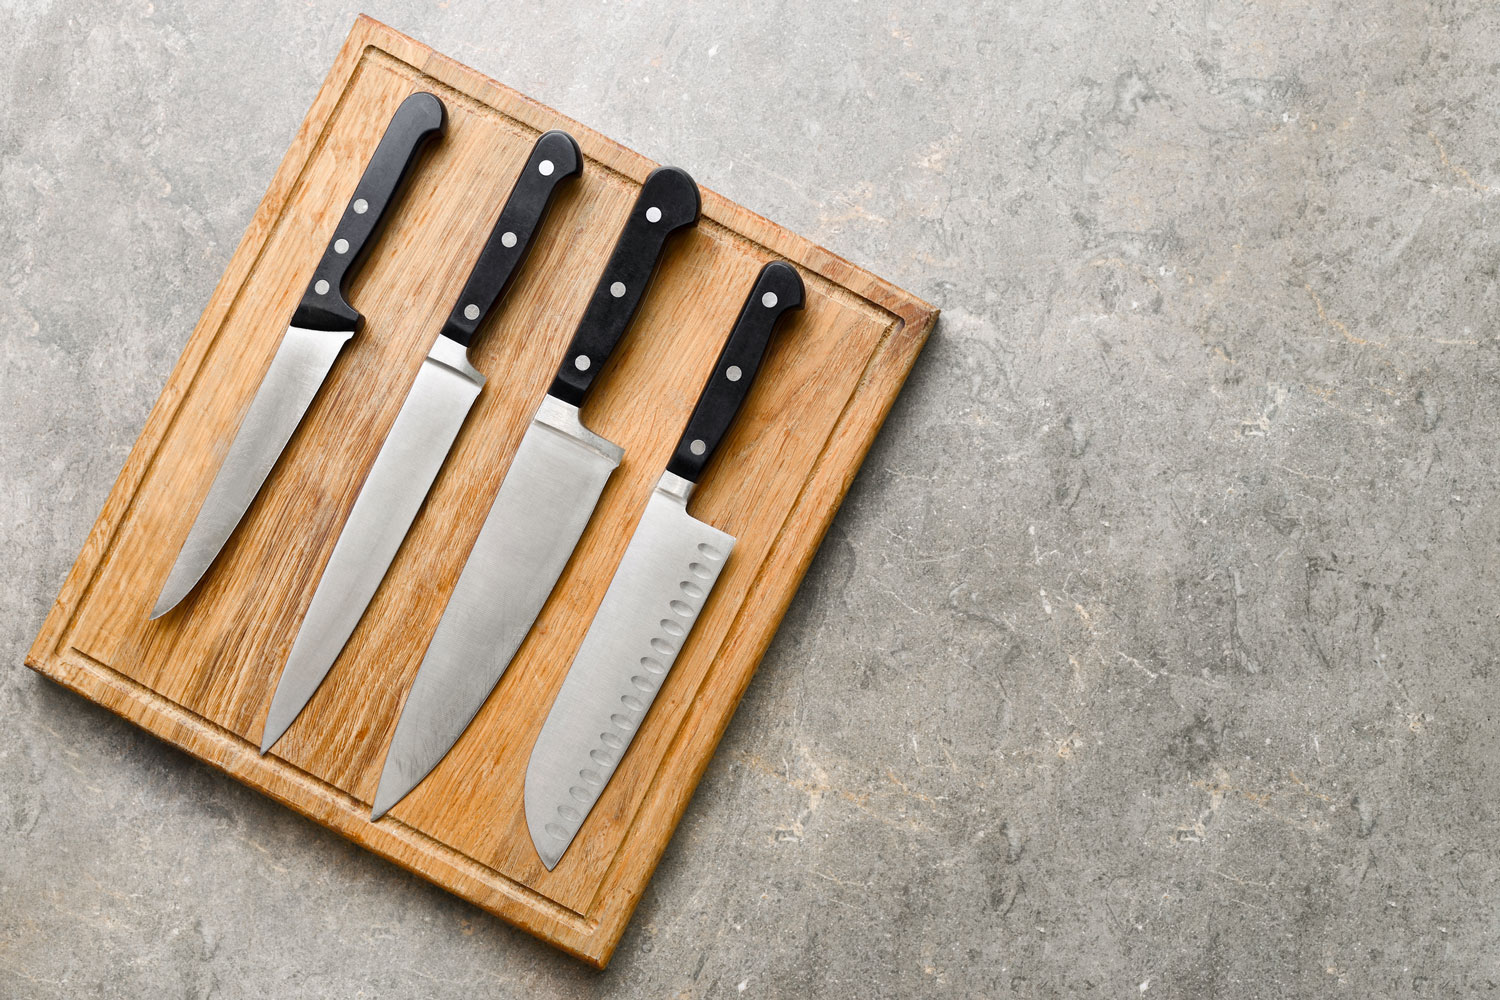 Which Knives Are Higher: Wusthof Or Zwilling?